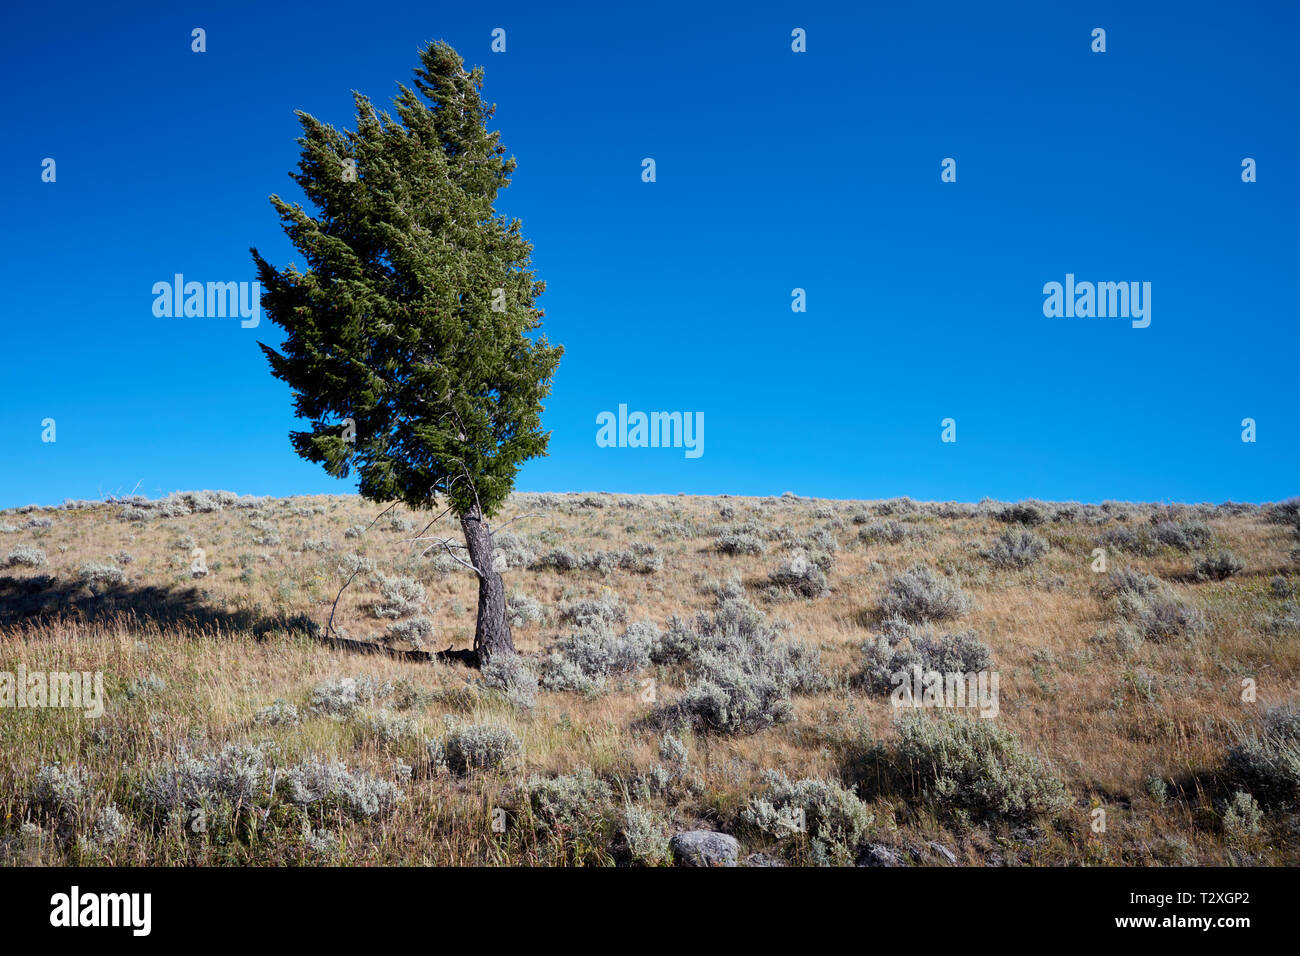 Lone pine tree at Blacktail Plateau in Yellowstone National Park - Stock Image